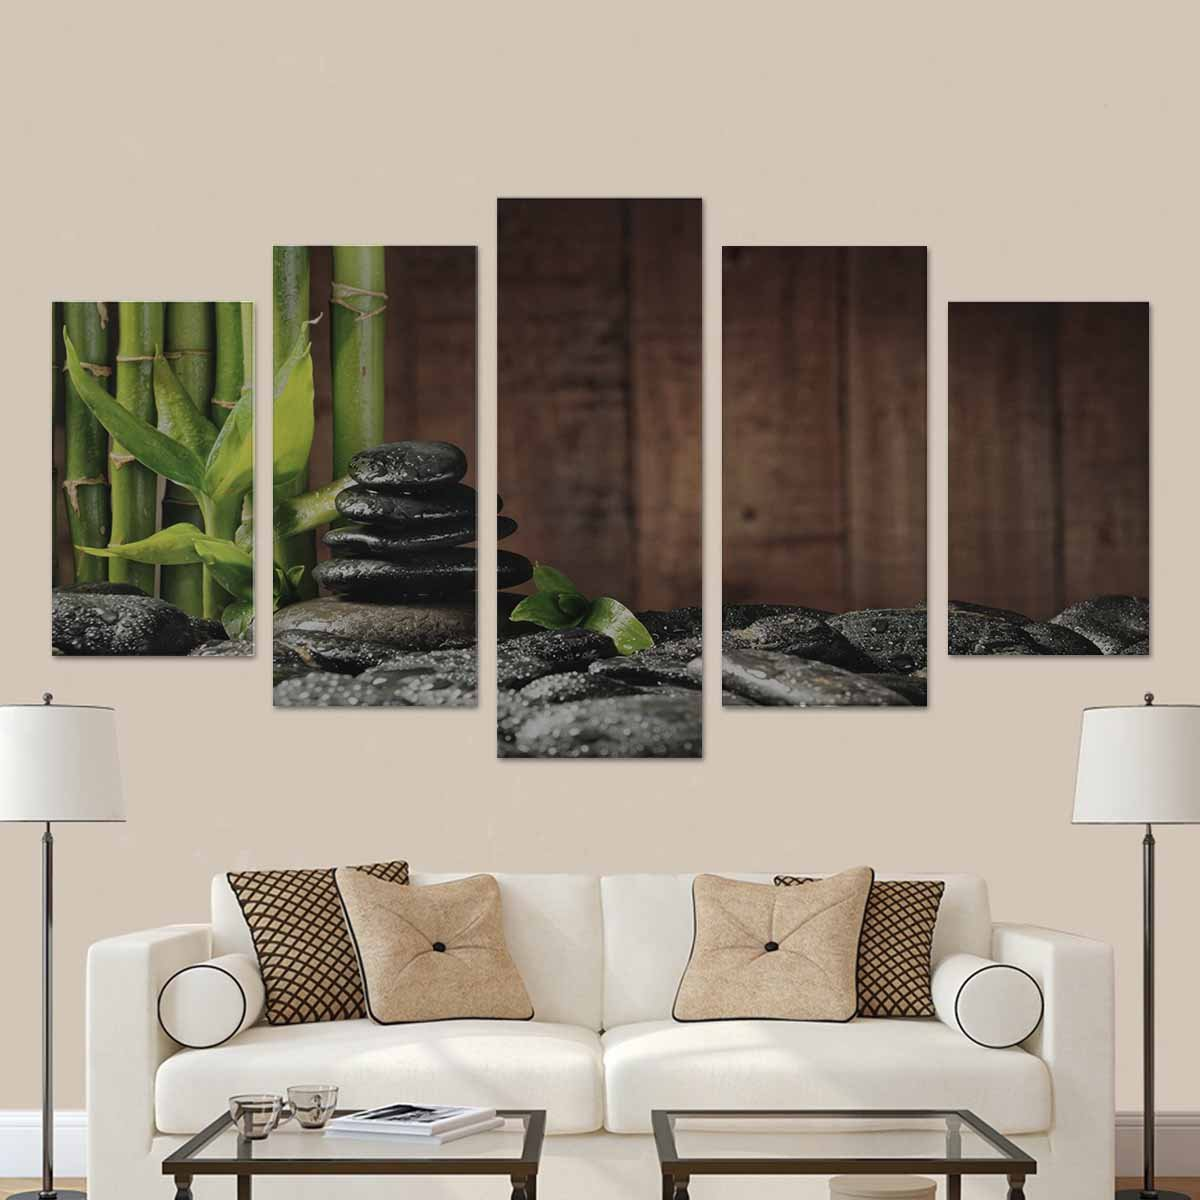 InterestPrint Spa Concept Bamboo Grove and Black Zen Stones on the Old Wooden Country House Image 5 Pieces Home Decor Wall Art Paintings for Modern Living Room (No Frame)